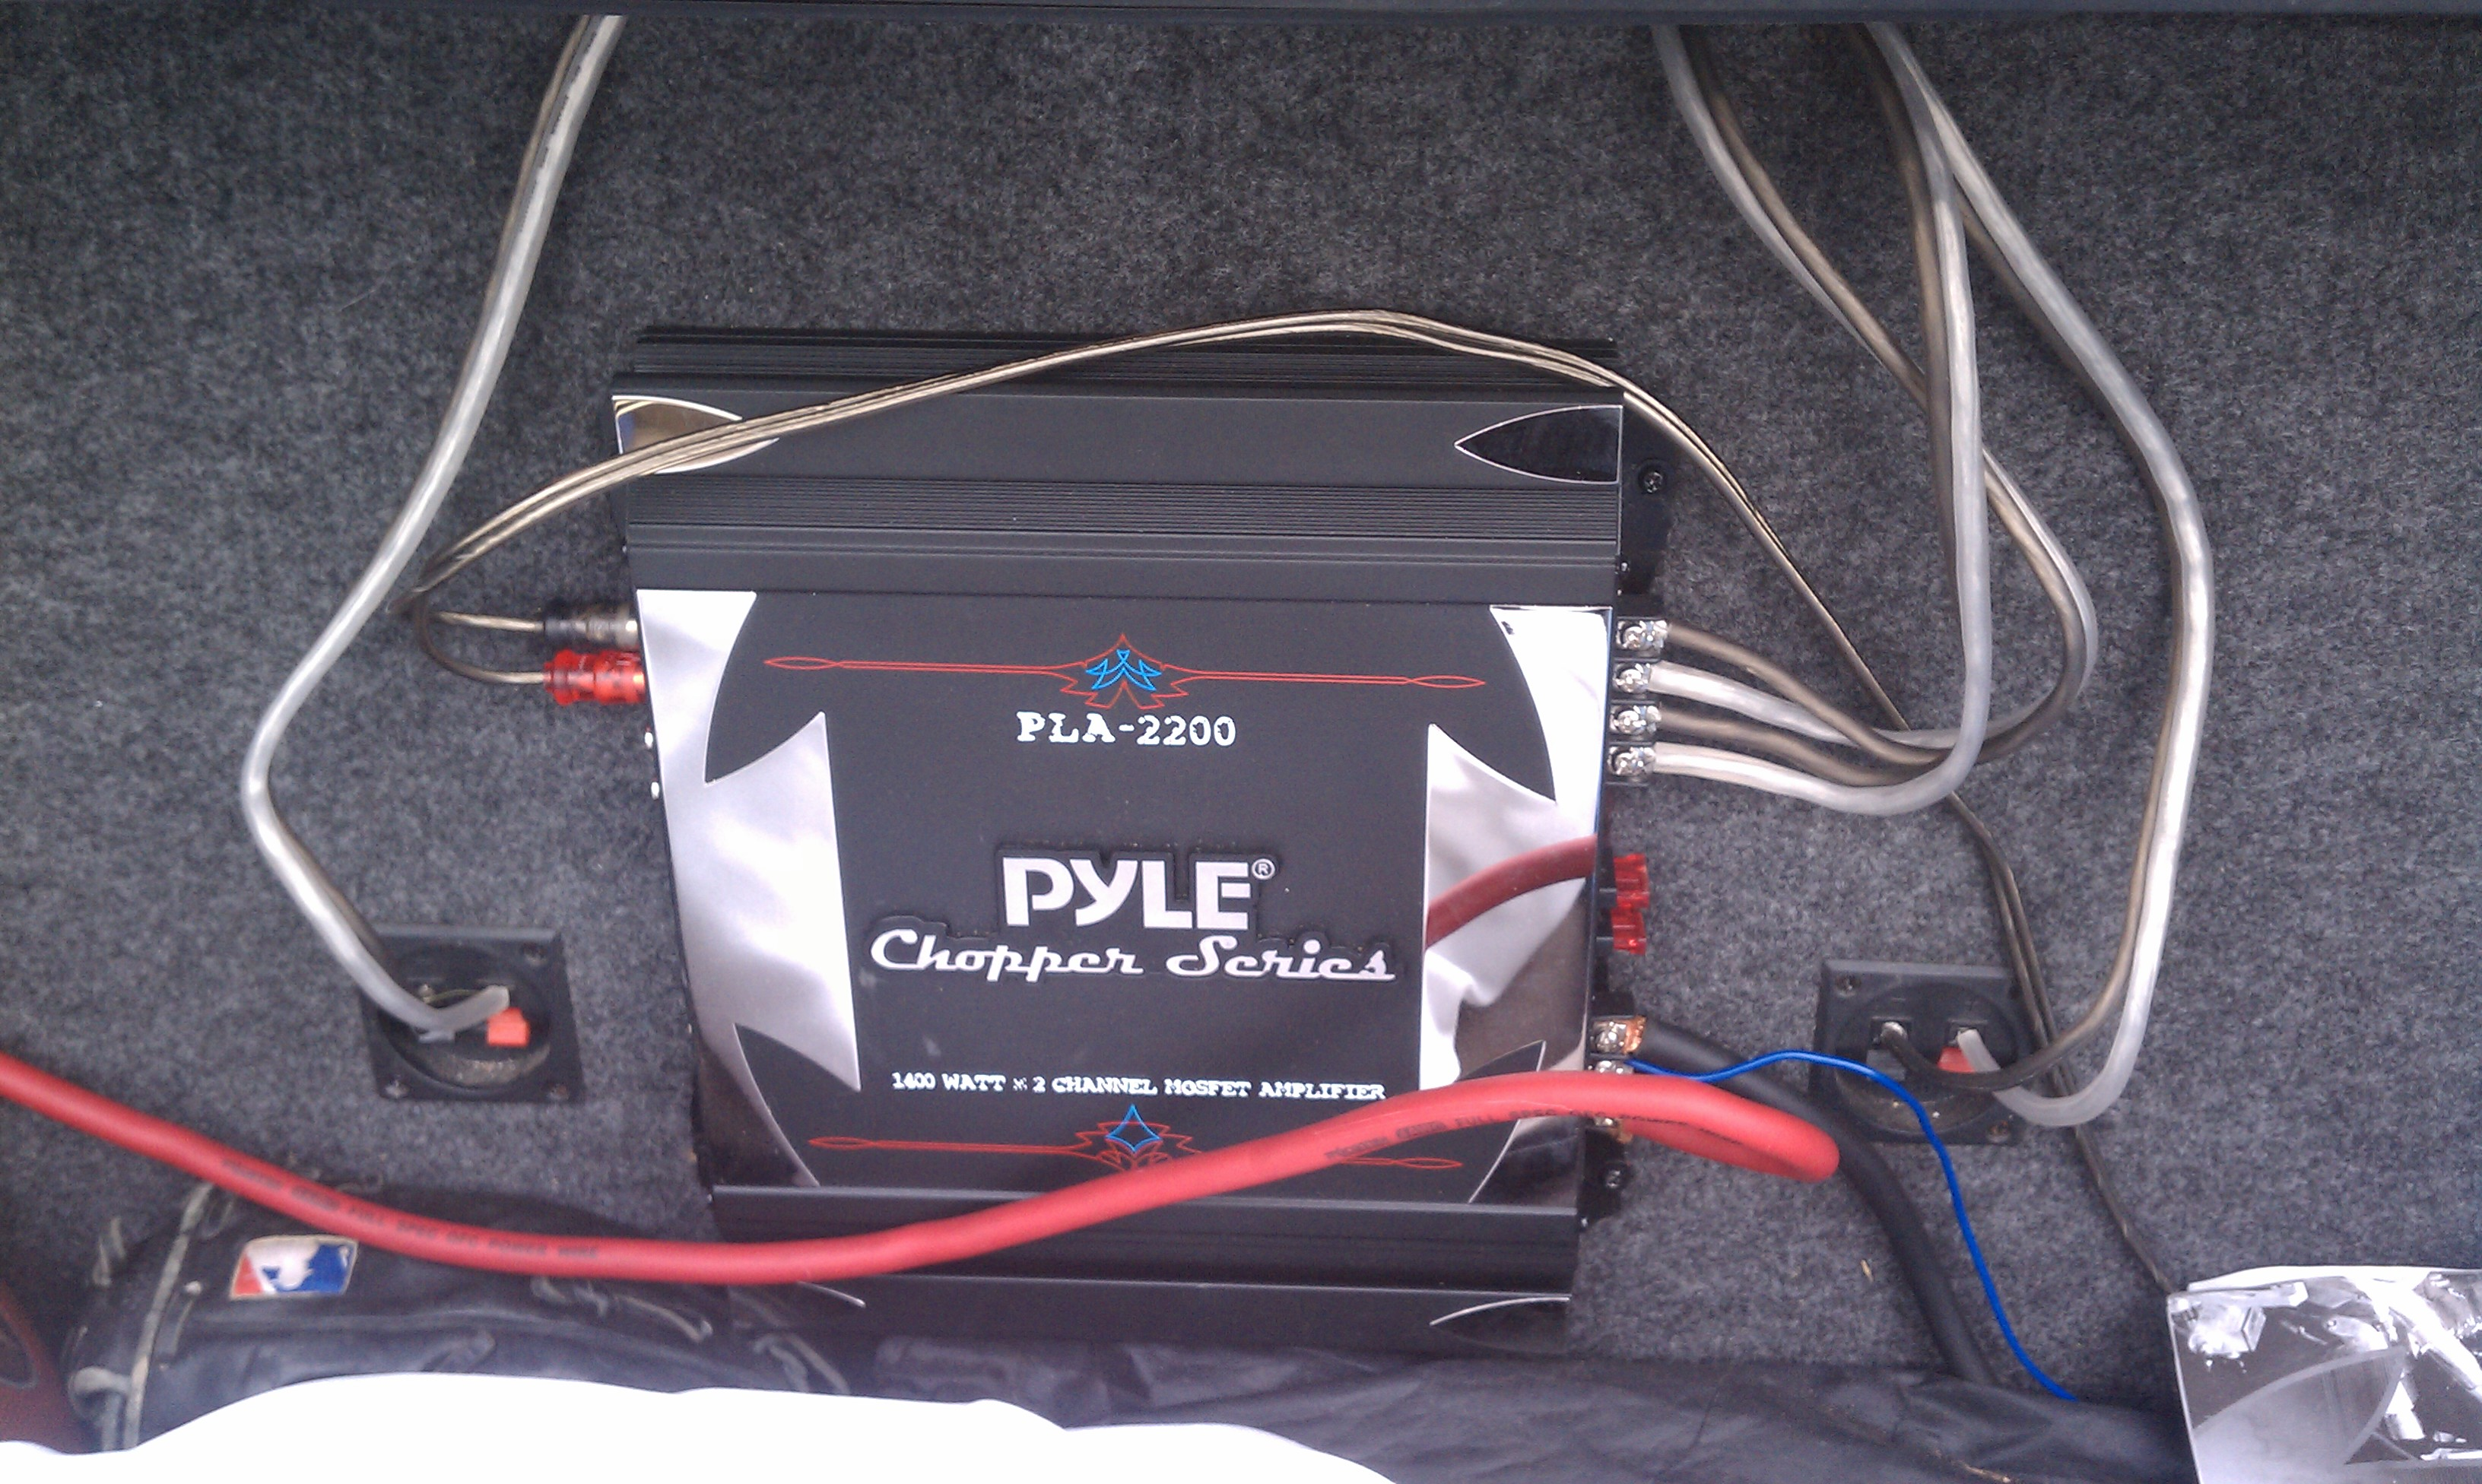 I Have Two Subs Im Trying To Install In My 07 Coupe Si Honda Civic Wire Harness Amp Cable Technician Hi And It All Connected New Radio Which Is